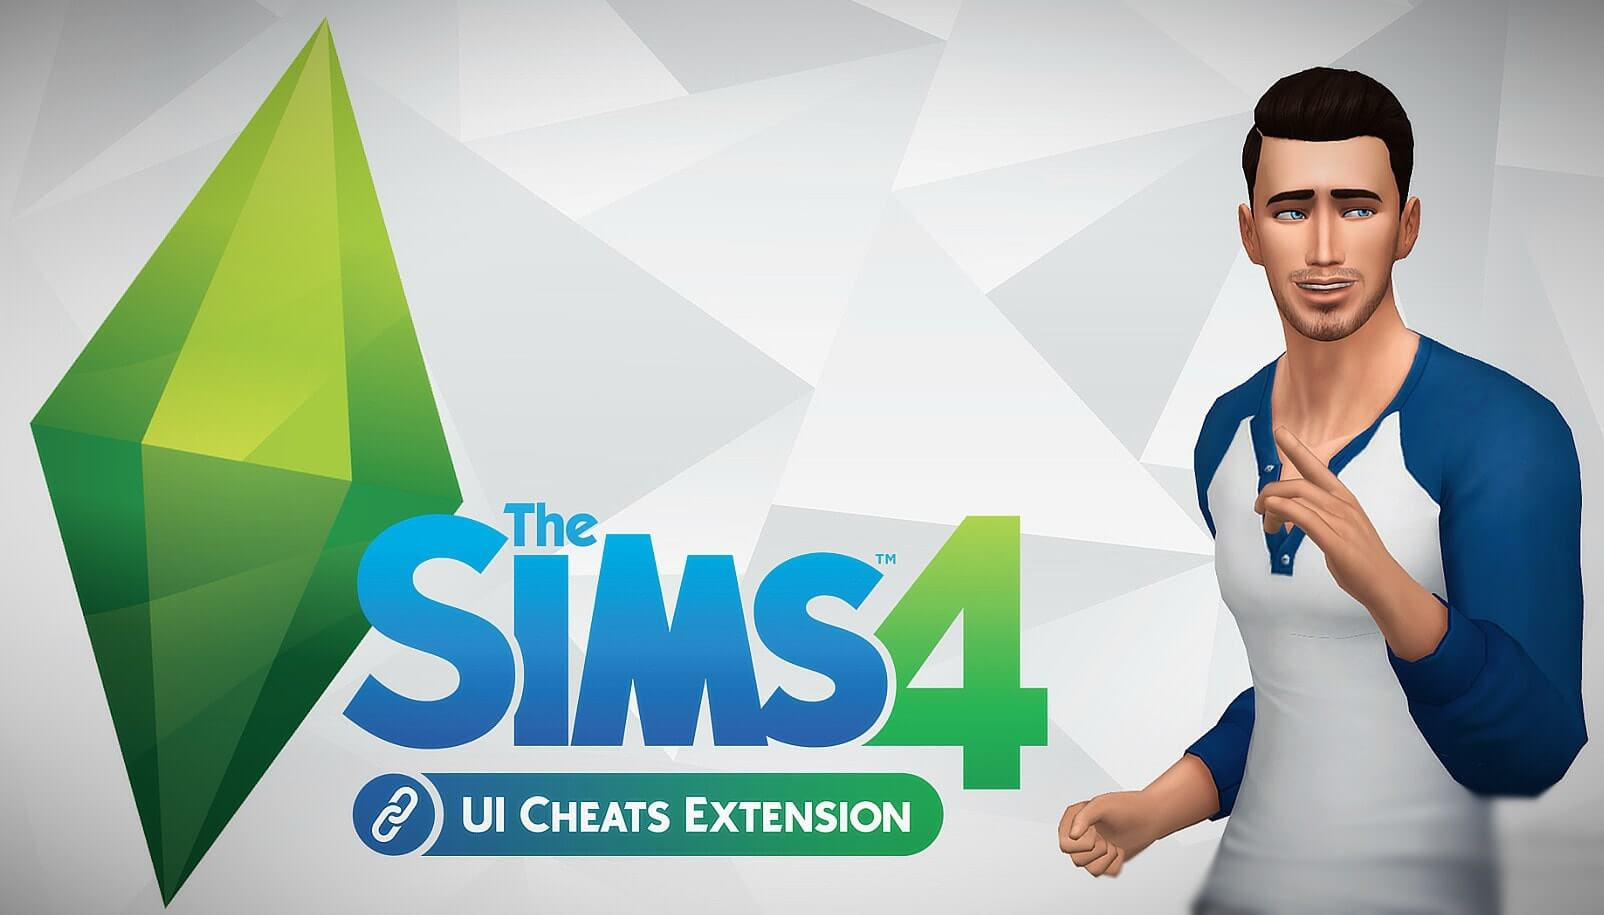 sims 4 ui cheats Extension